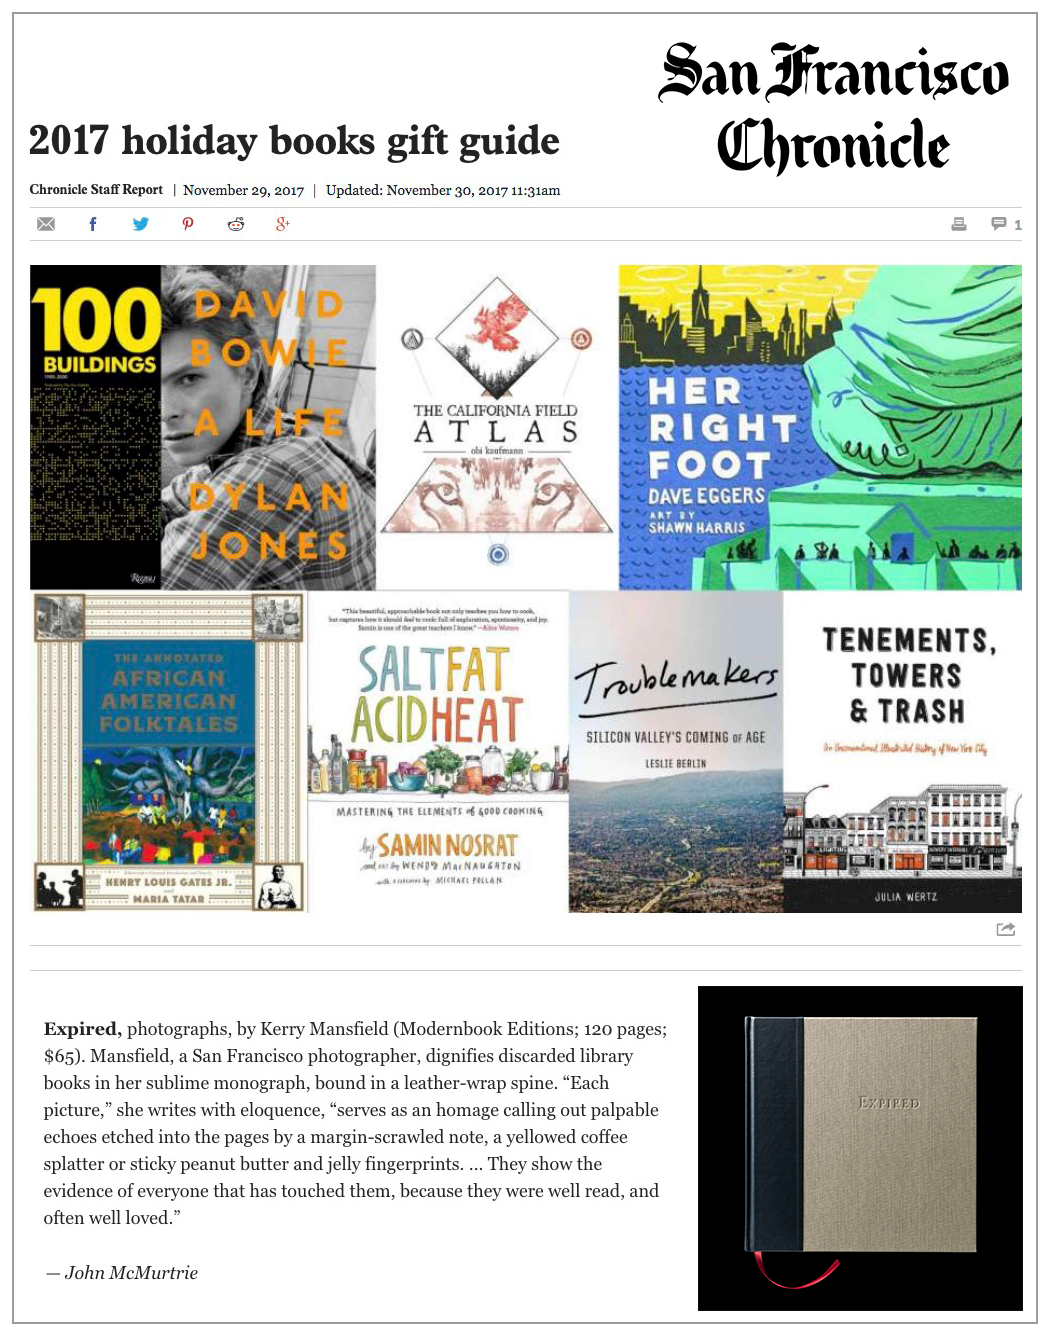 SFChronicle_GiftBook_Expired.jpg